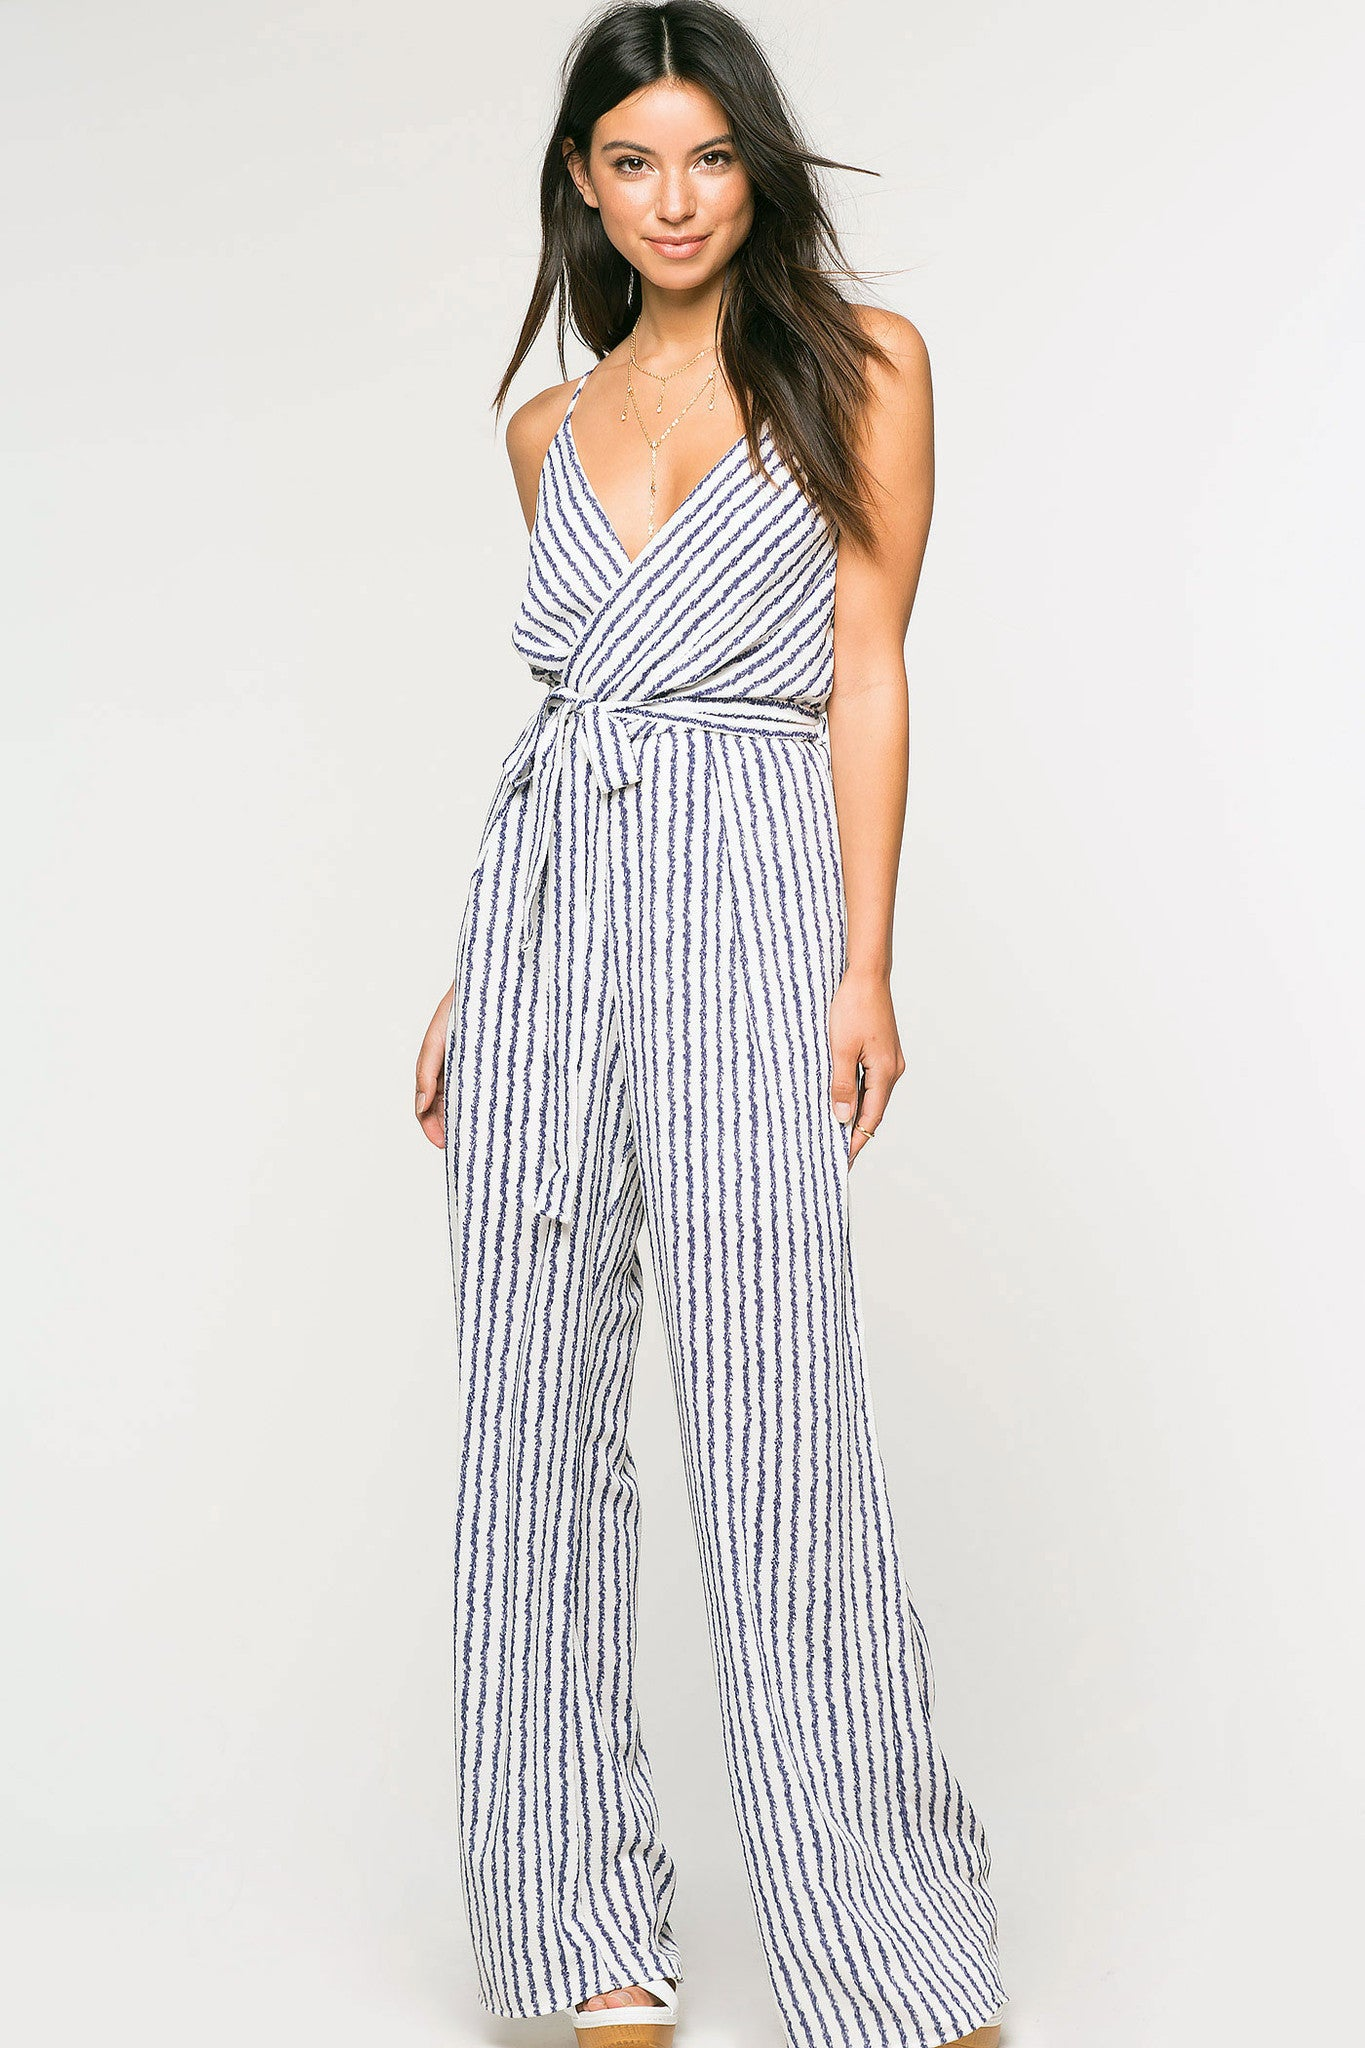 Women's sleeveless blue and white pinstripe stripe surplice wrap deep v-neck jumpsuit with wide legs